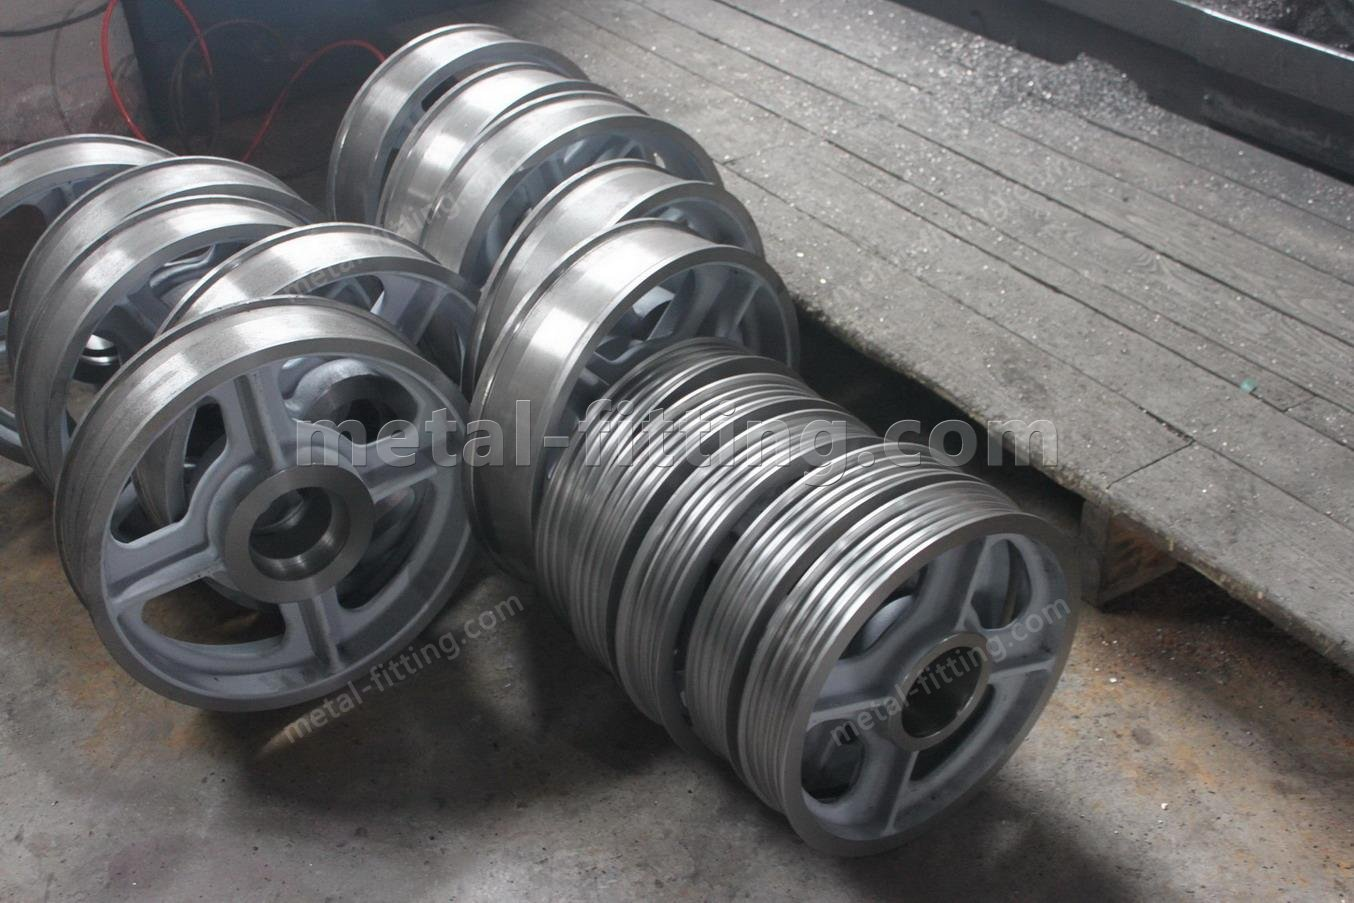 GG20 ductile iron concrete/cement mixer wheels  ring gear ring  pinion gears-IMG_7149